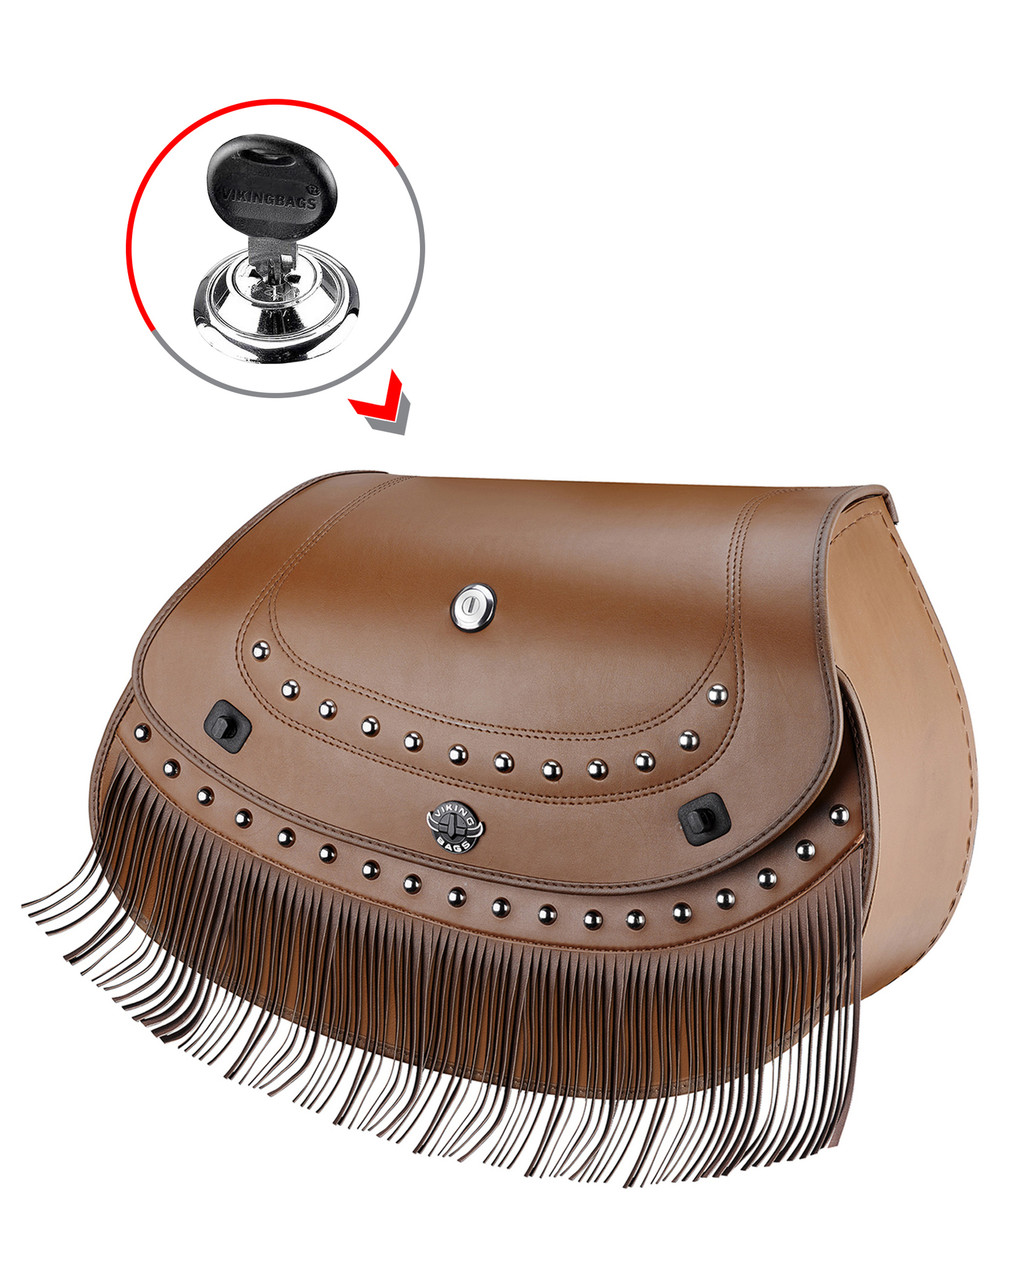 Indian Chief Classic Viking Indian Specific Brown Leather Motorcycle Saddlebags Key Lock View